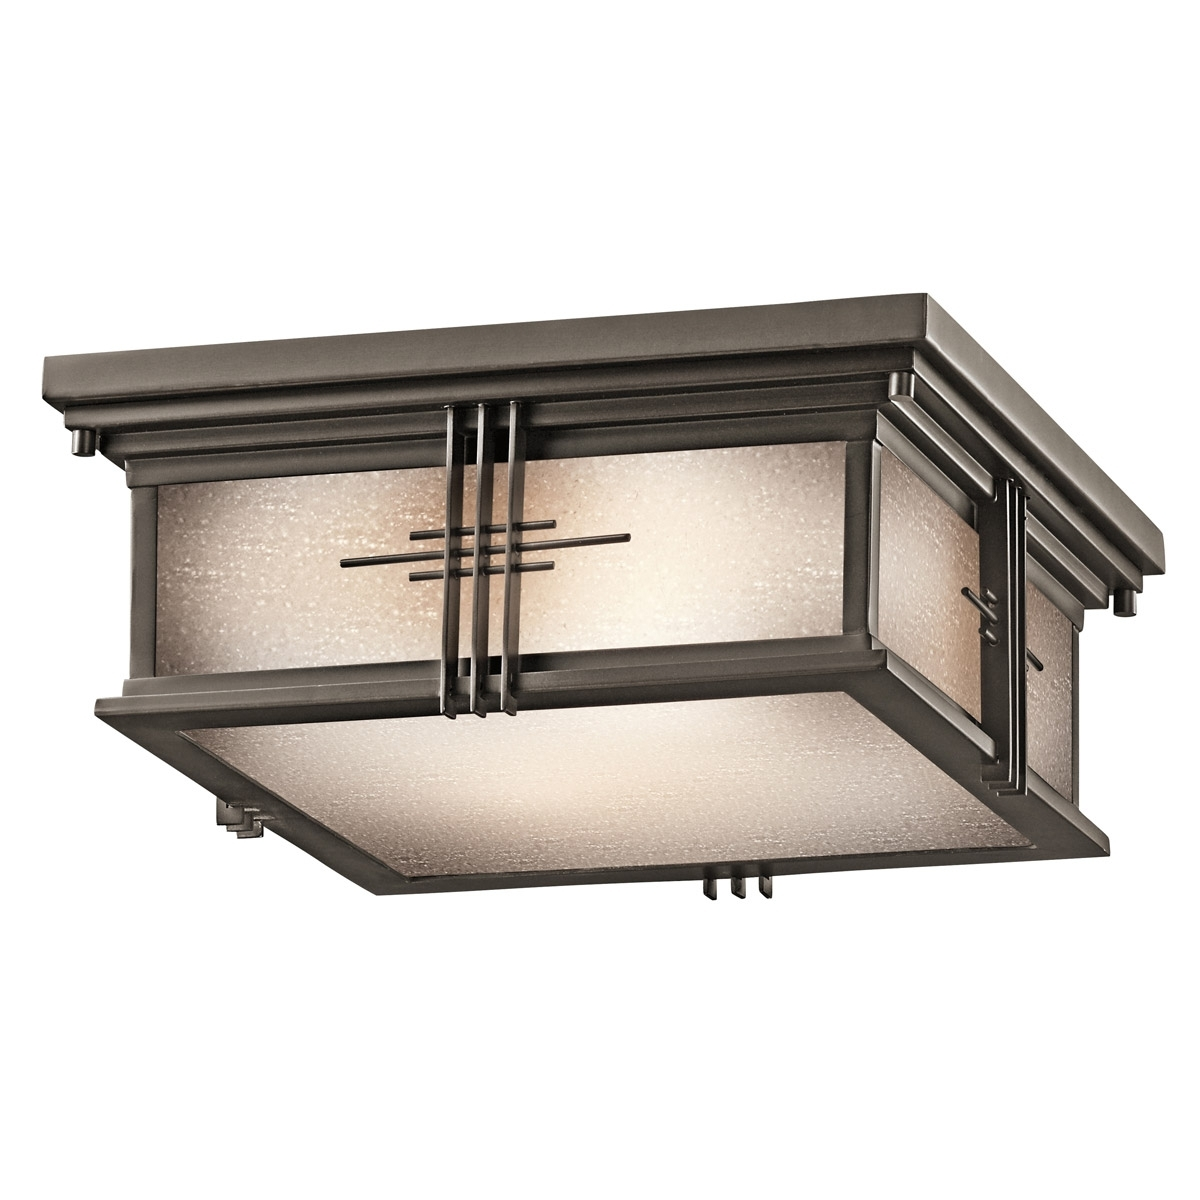 Widely Used Kichler Outdoor Ceiling Lights Intended For 49164Oz Portman Square Outdoor Flush Mount Ceiling Fixture (View 20 of 20)